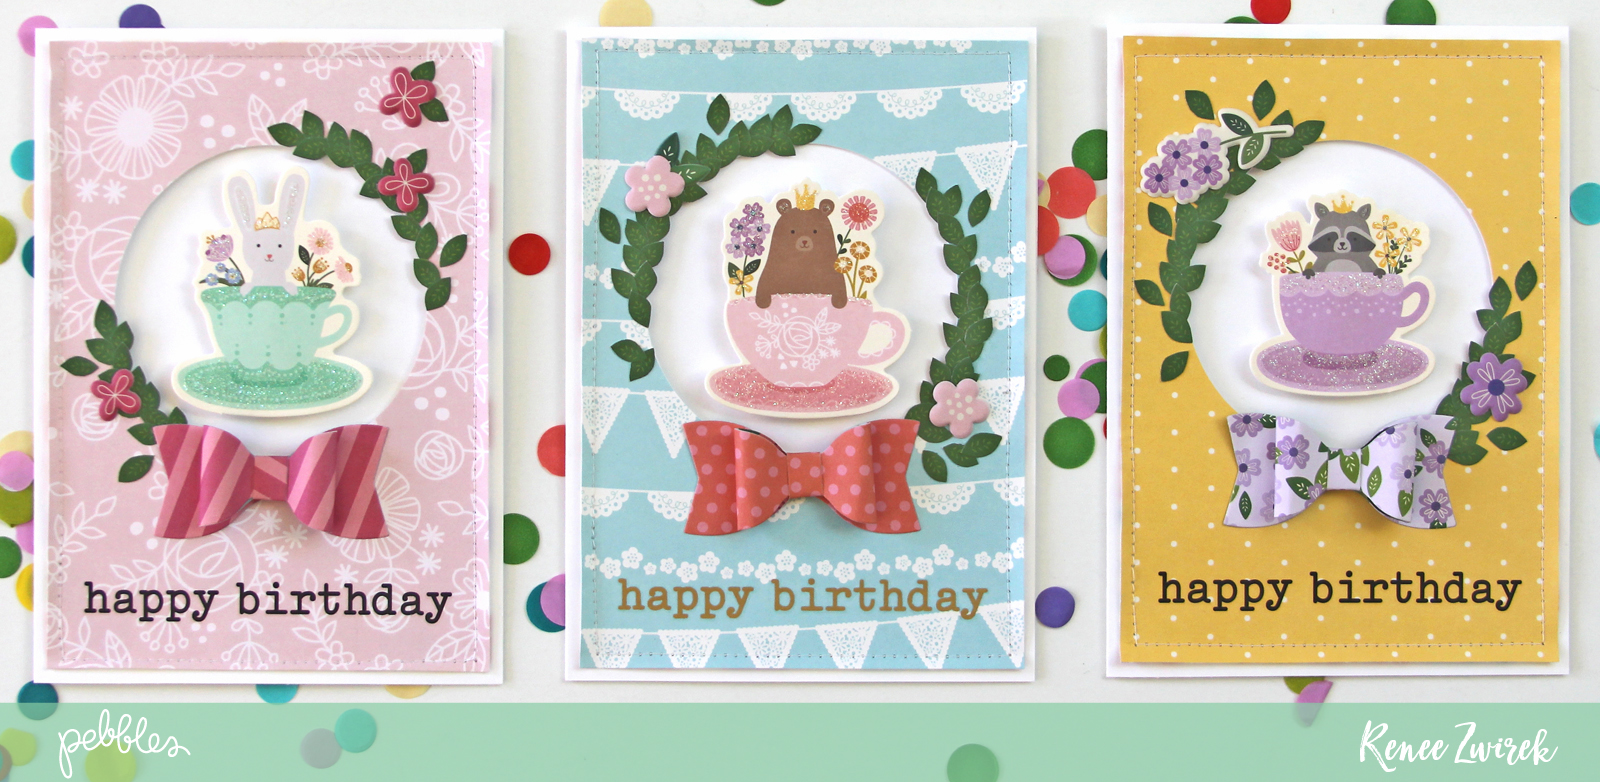 Send birthday wishes with a bit of whimsy with these lovely Happy Birthday cards by @reneezwirek using the #Tealightful collection by @pebblesinc